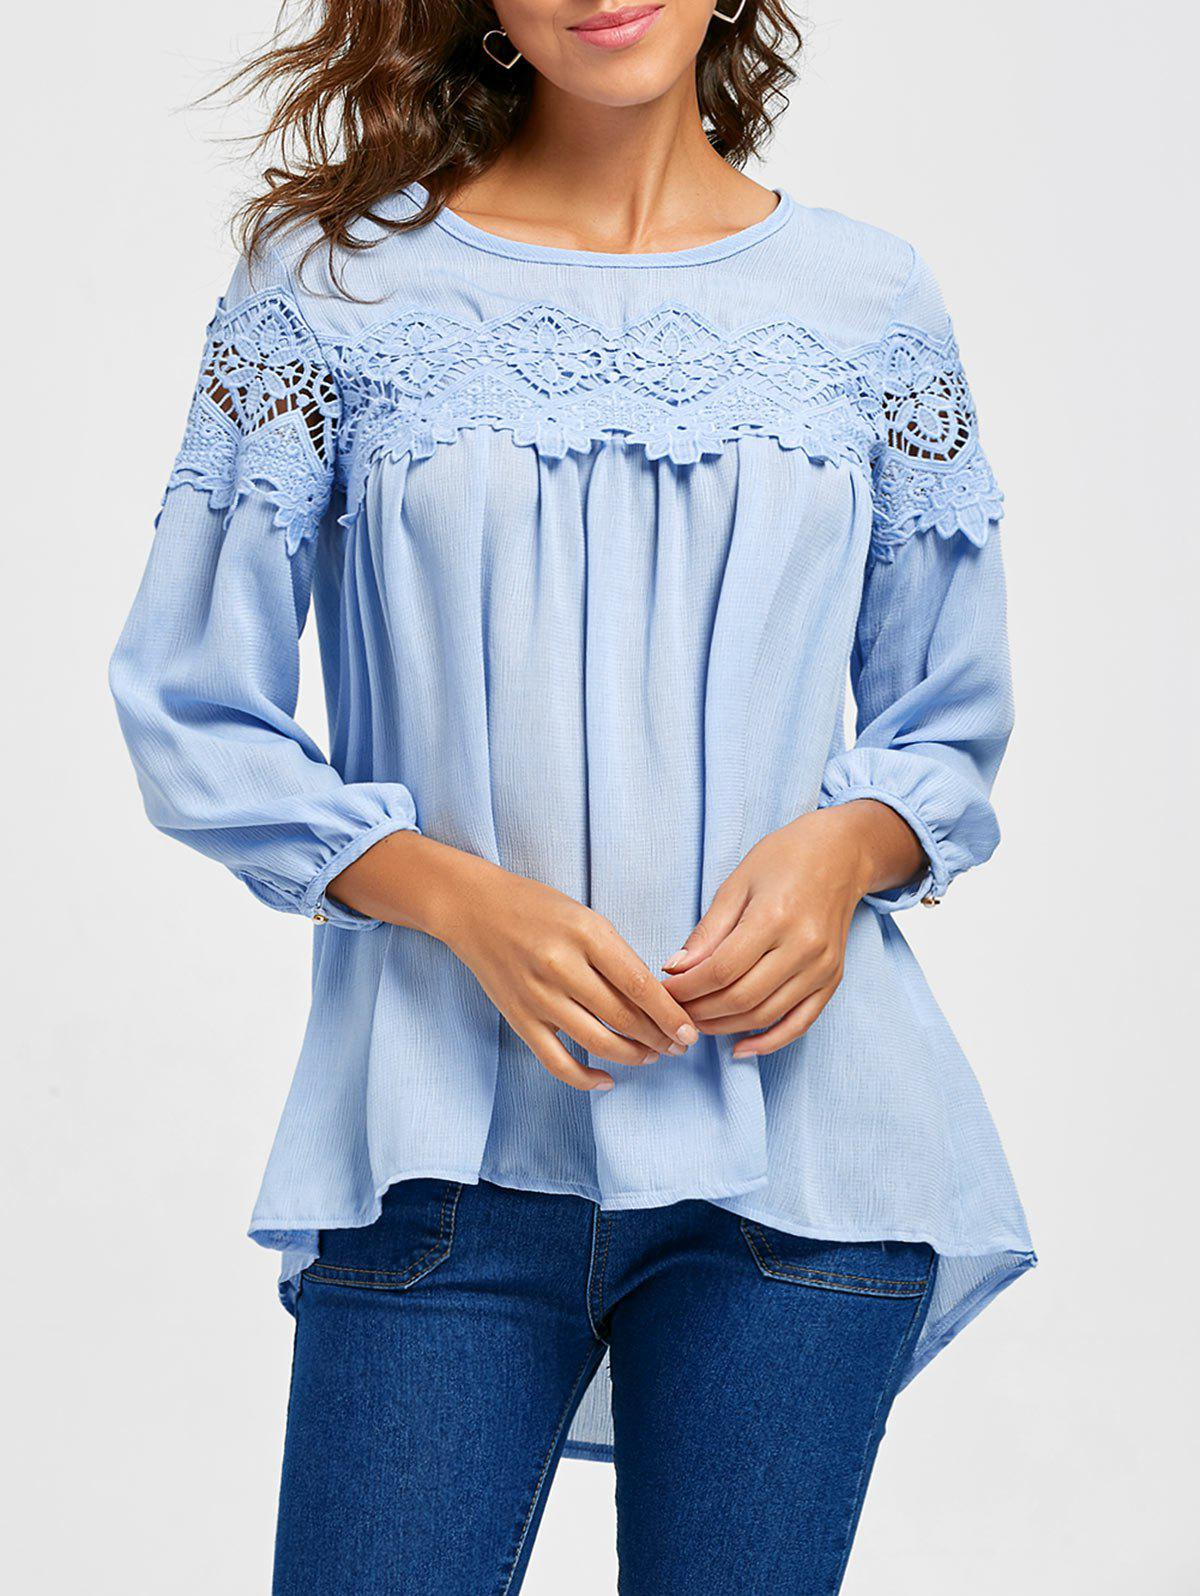 Lace Insert Scoop Neck High Low BlouseWOMEN<br><br>Size: L; Color: LIGHT BLUE; Style: Fashion; Material: Polyester; Shirt Length: Regular; Sleeve Length: Three Quarter; Collar: Scoop Neck; Pattern Type: Solid; Embellishment: Lace; Season: Fall,Spring; Weight: 0.3300kg; Package Contents: 1 x Blouse;